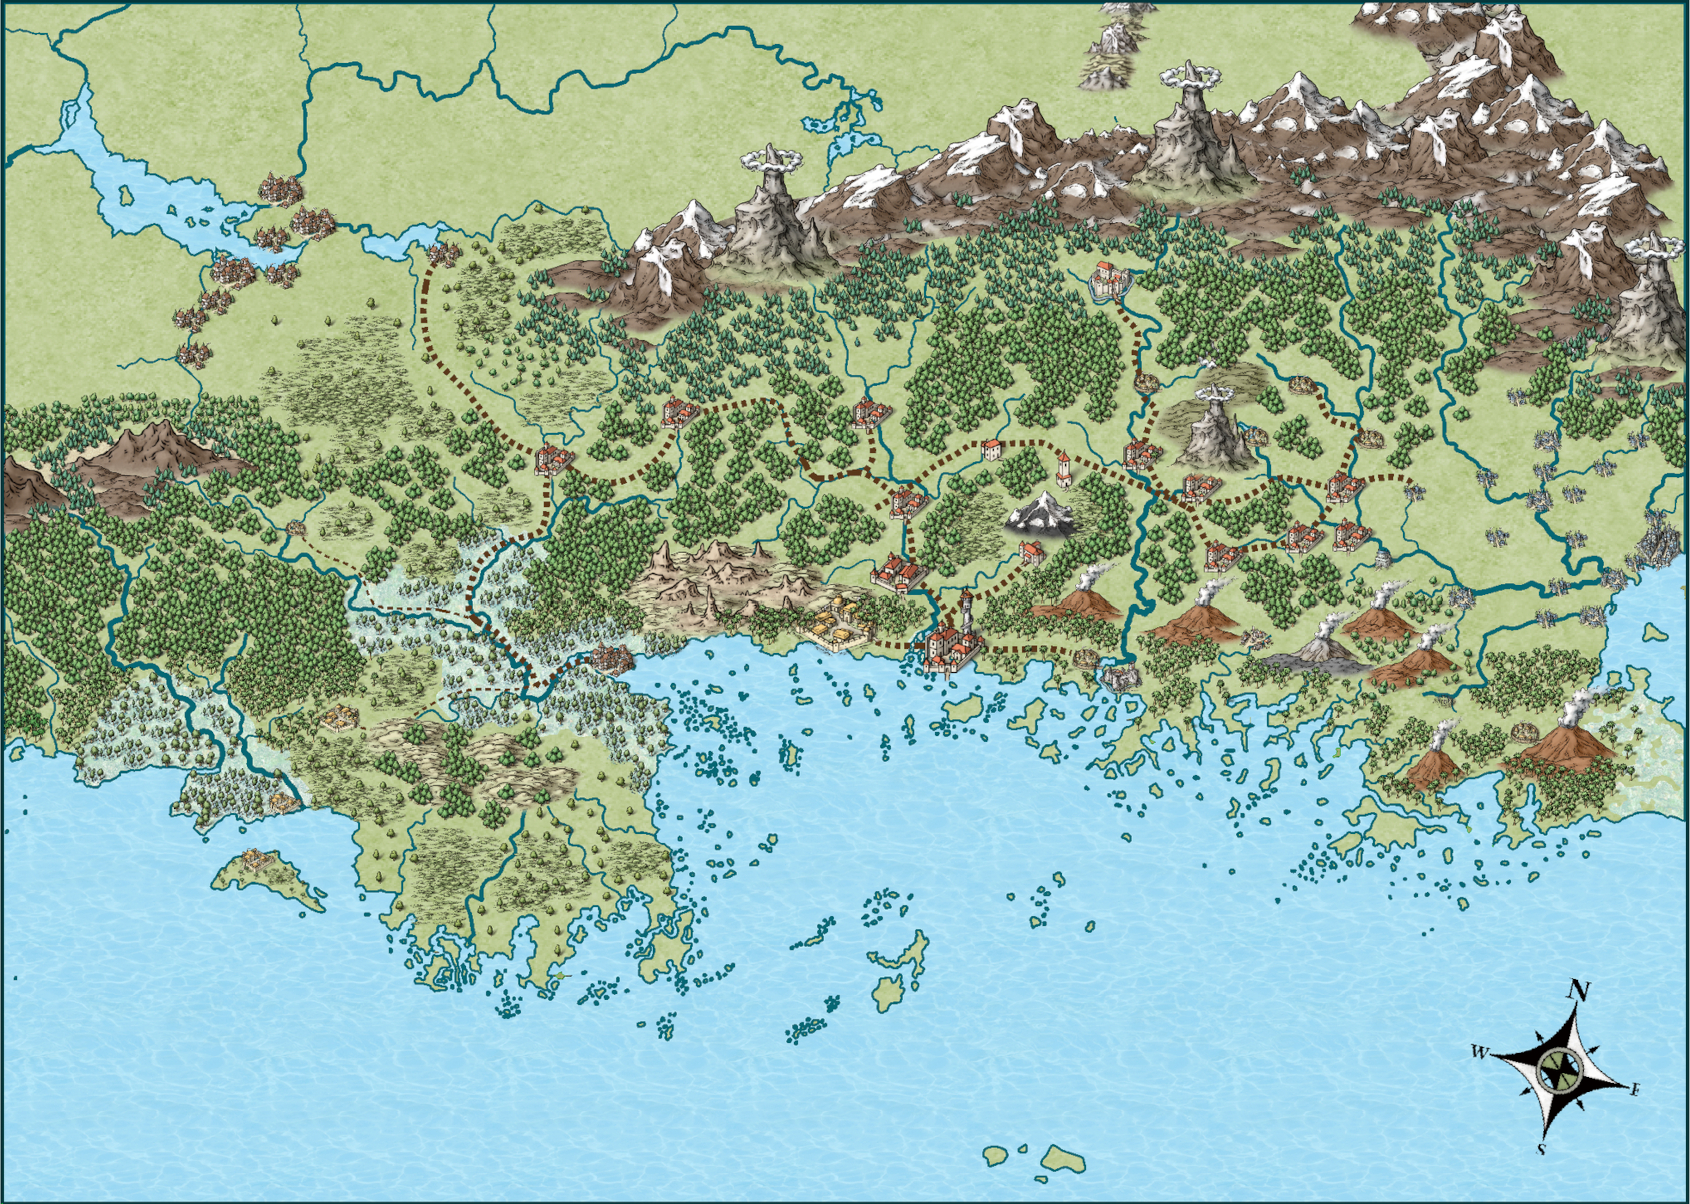 Maniria Big Map 4-9-2021 for PF.JPG